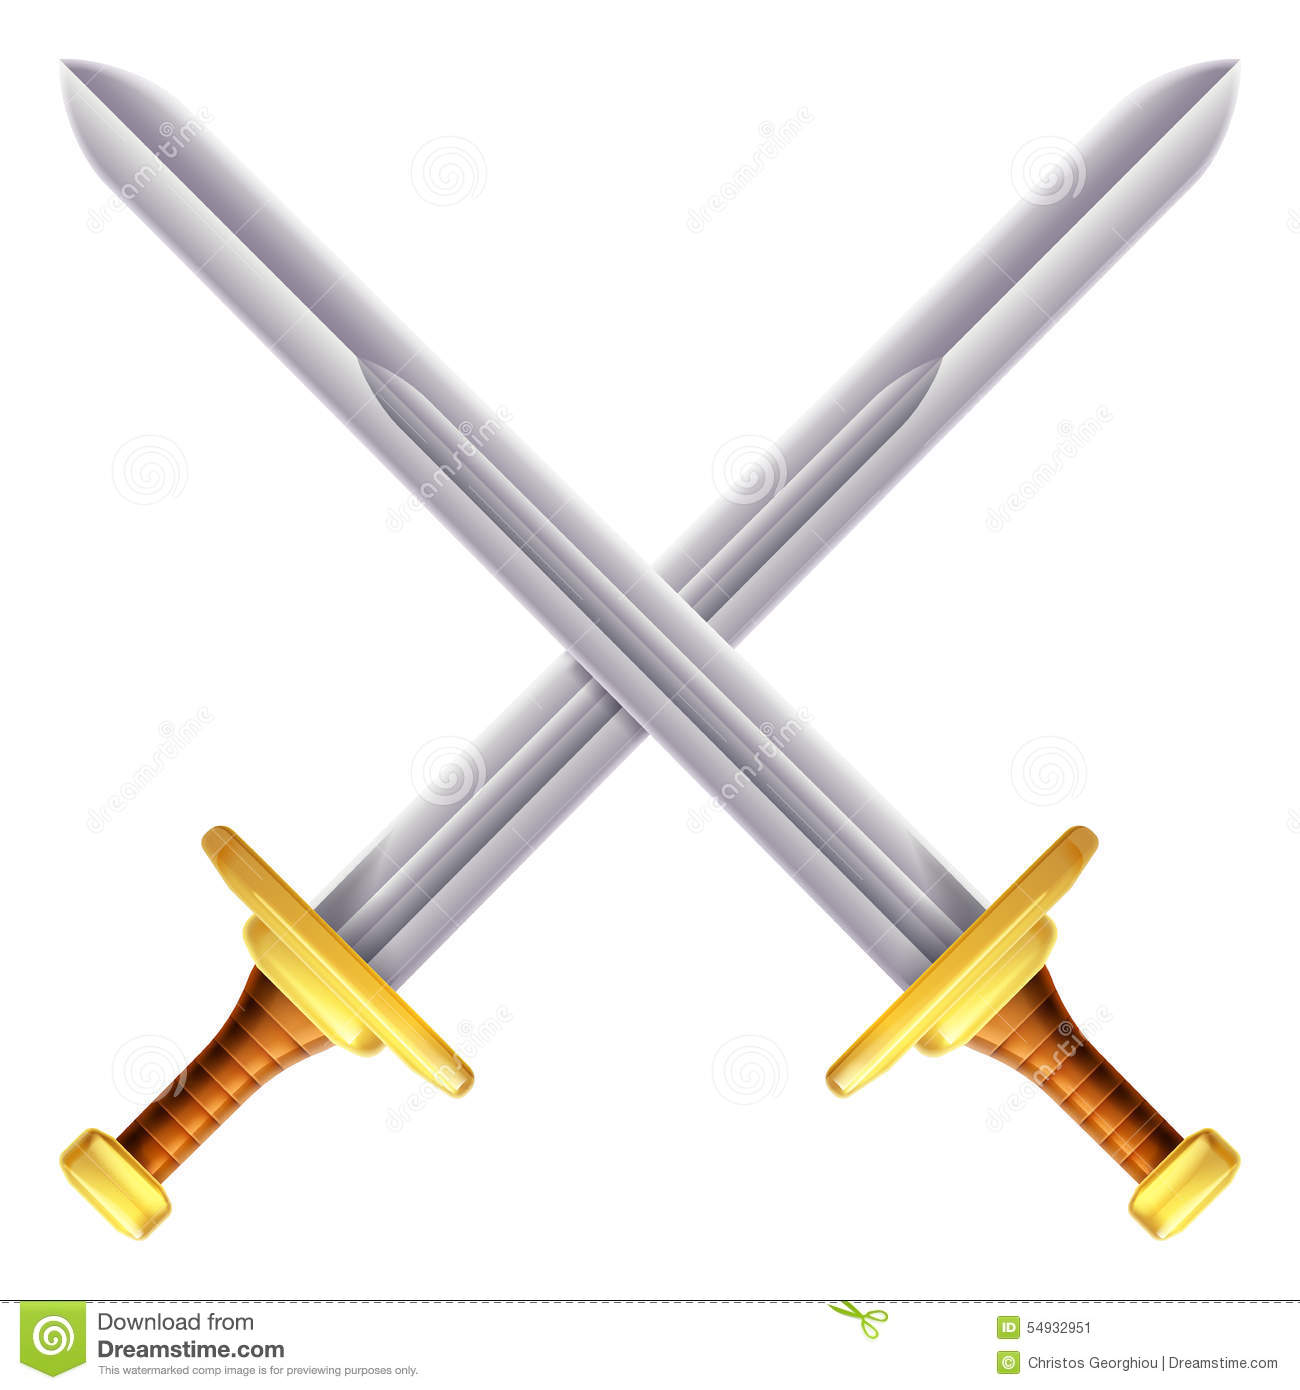 Fencing swords crossed